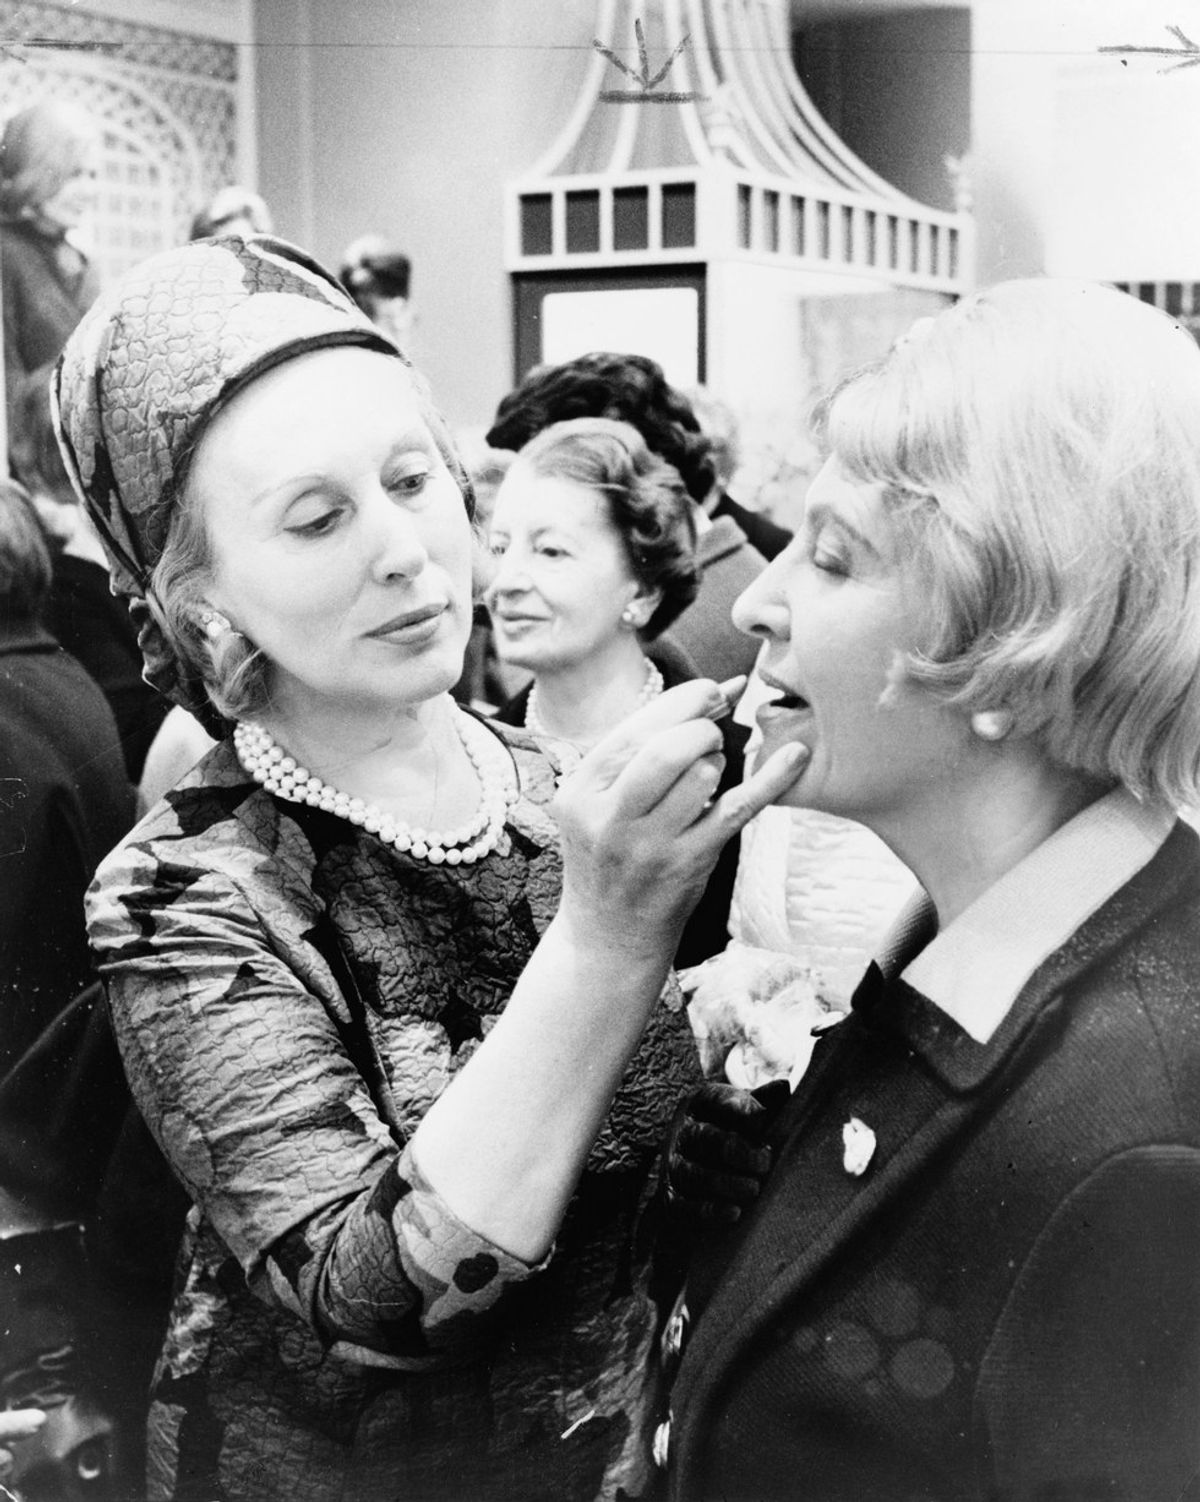 Things You Didn't Know About Estee Lauder